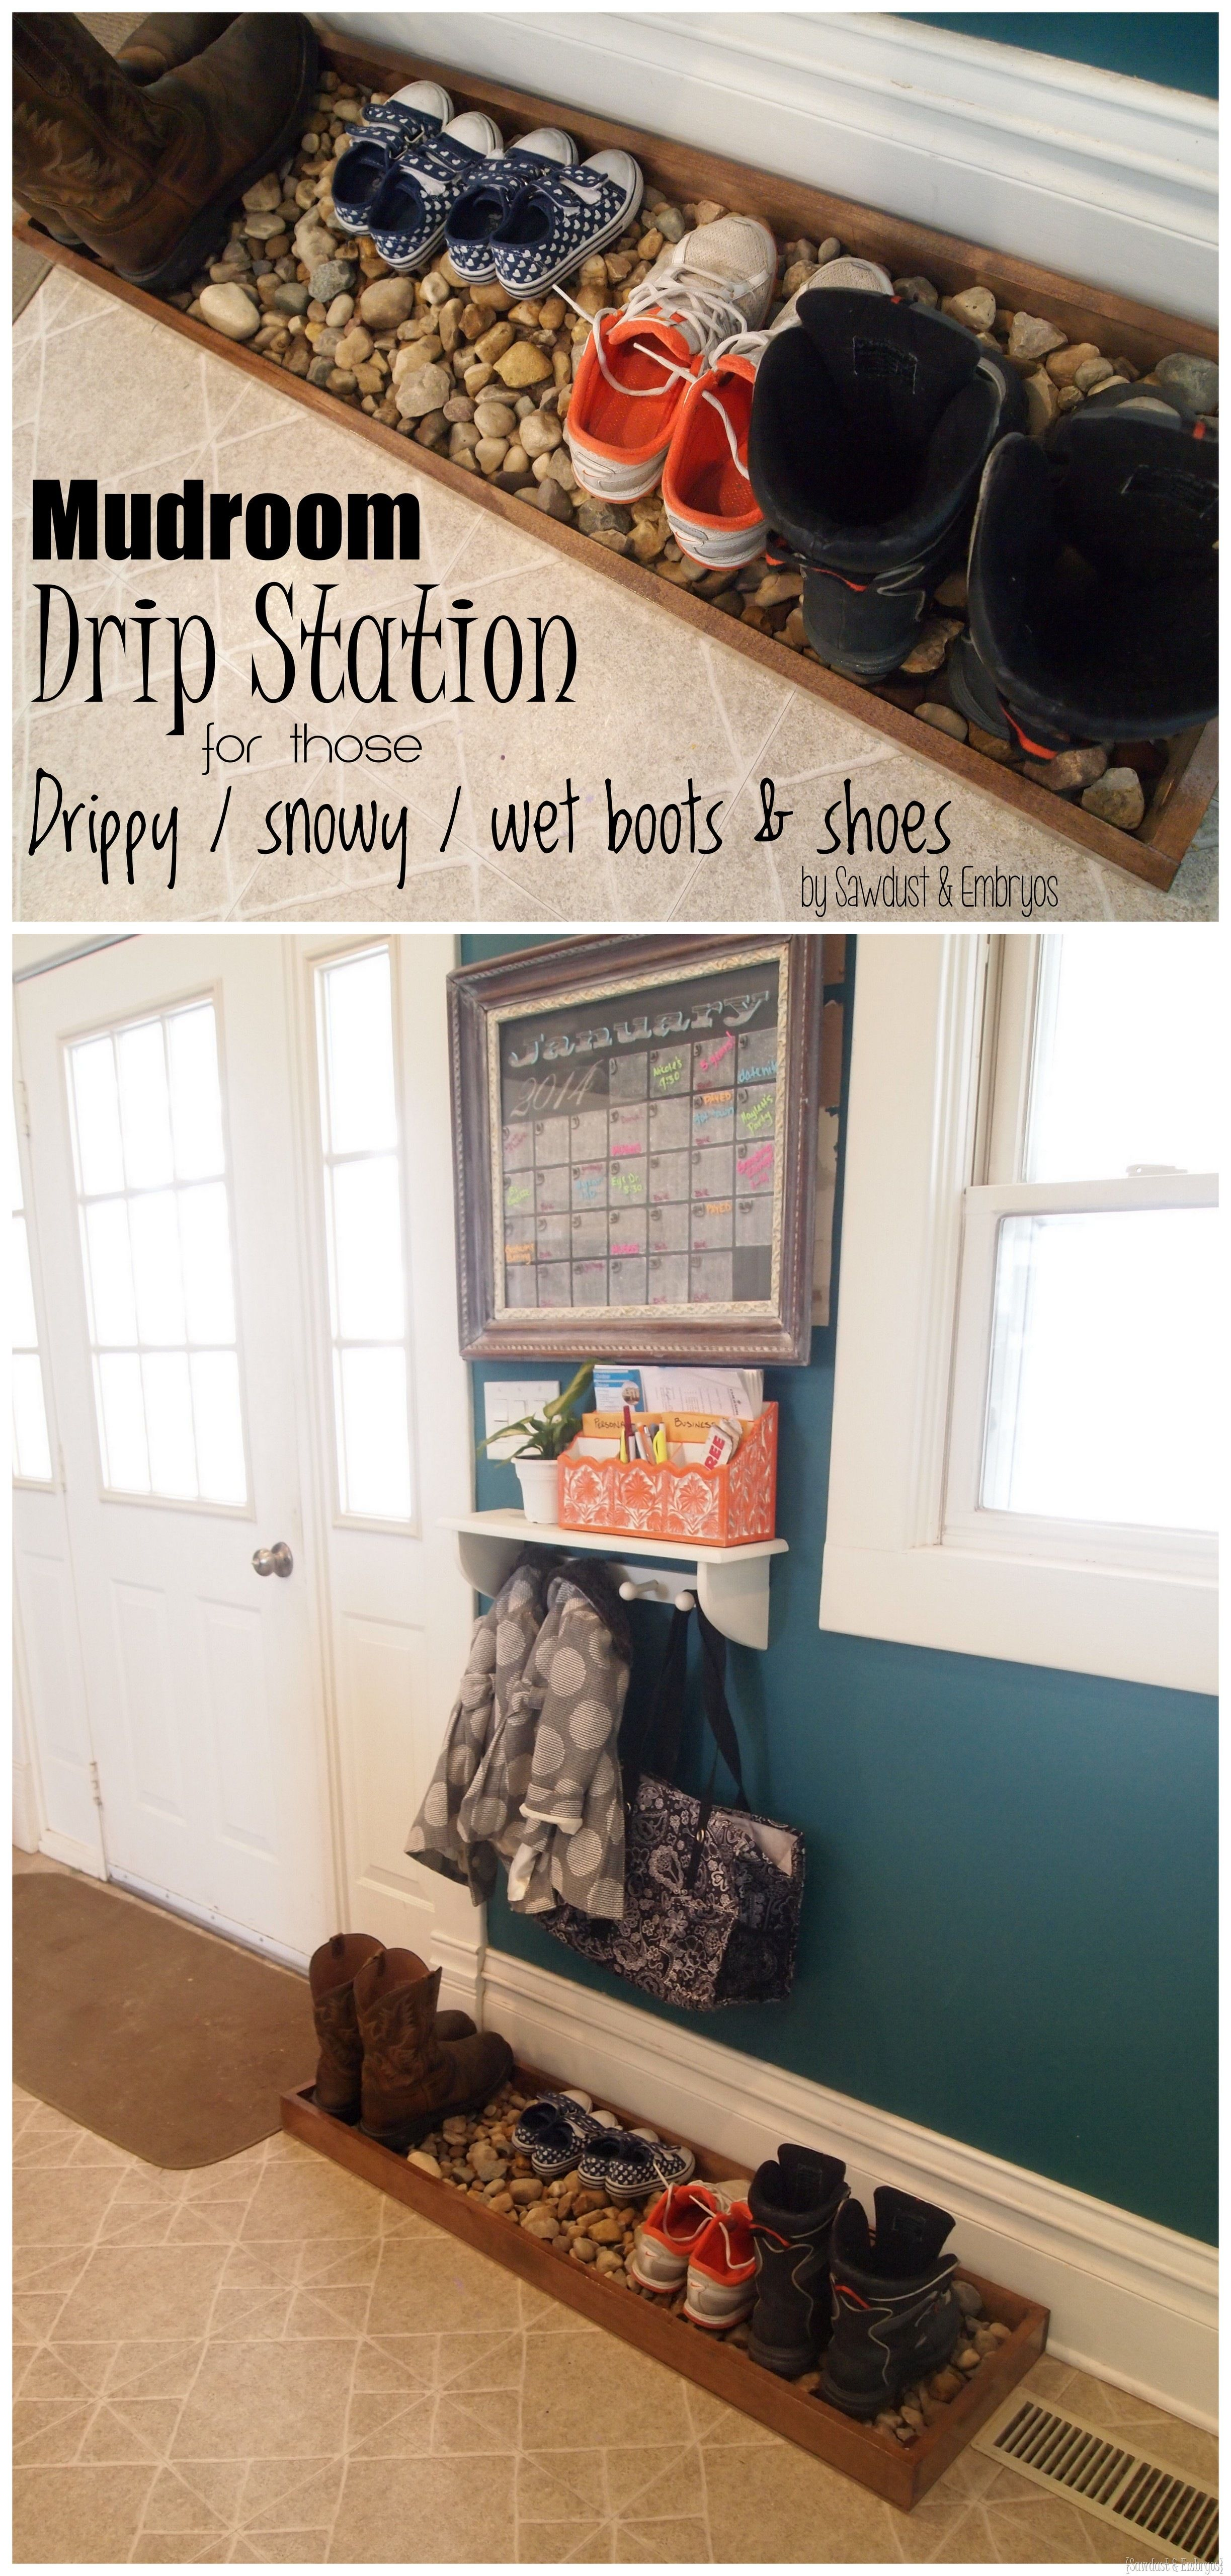 Build A Drip Tray For Muddy Or Snowy Boots And Shoes Sawdust Embryos